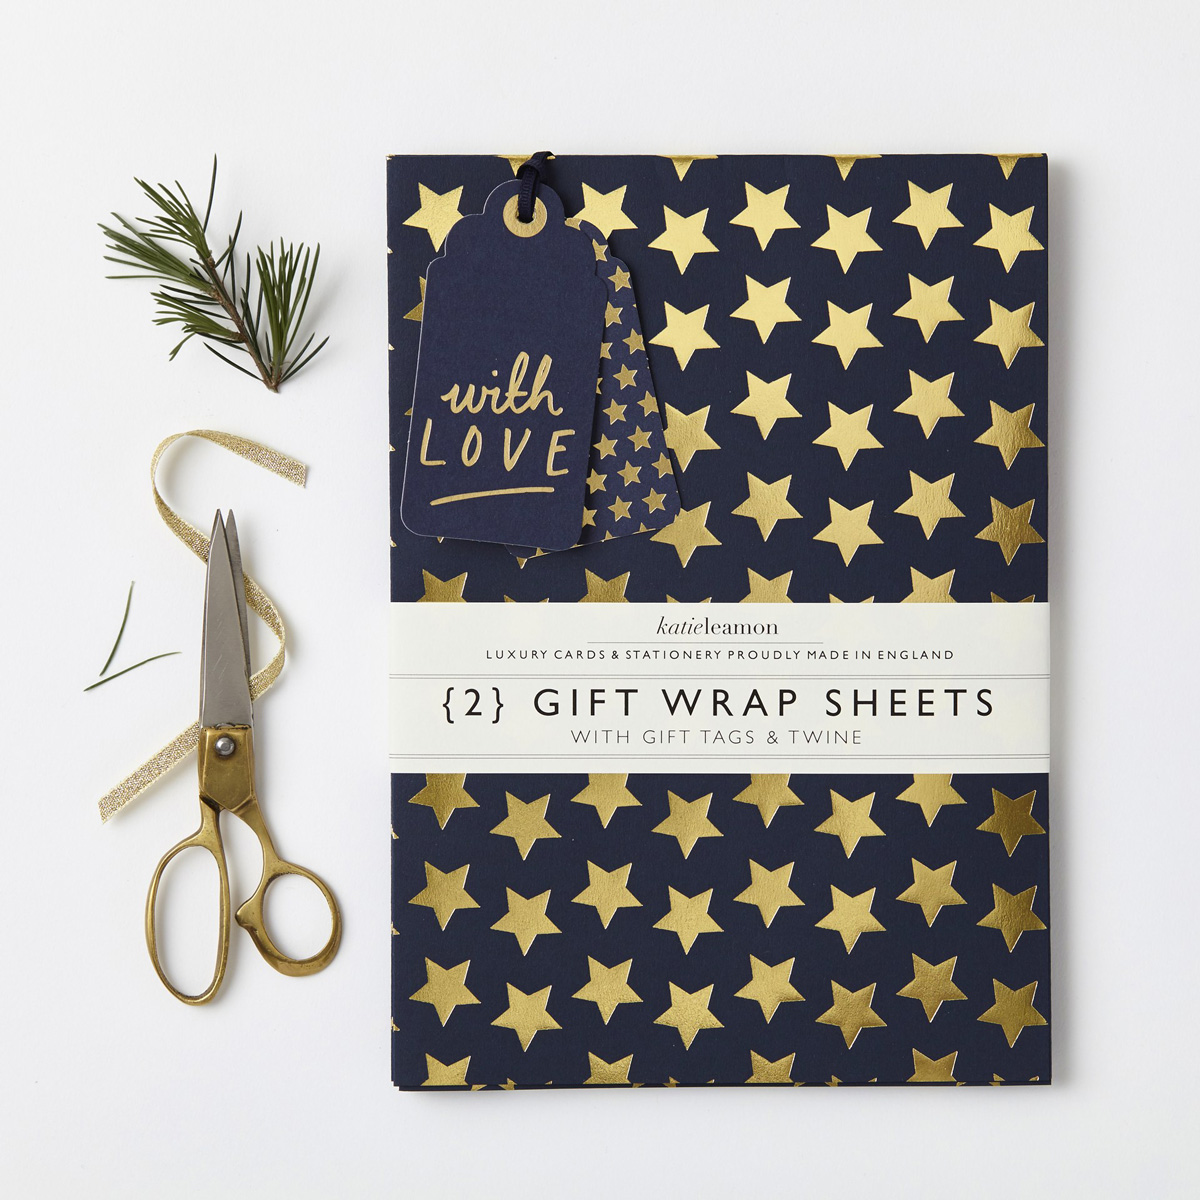 Katie Leamon luxury blue & gold star gift wrap sheets